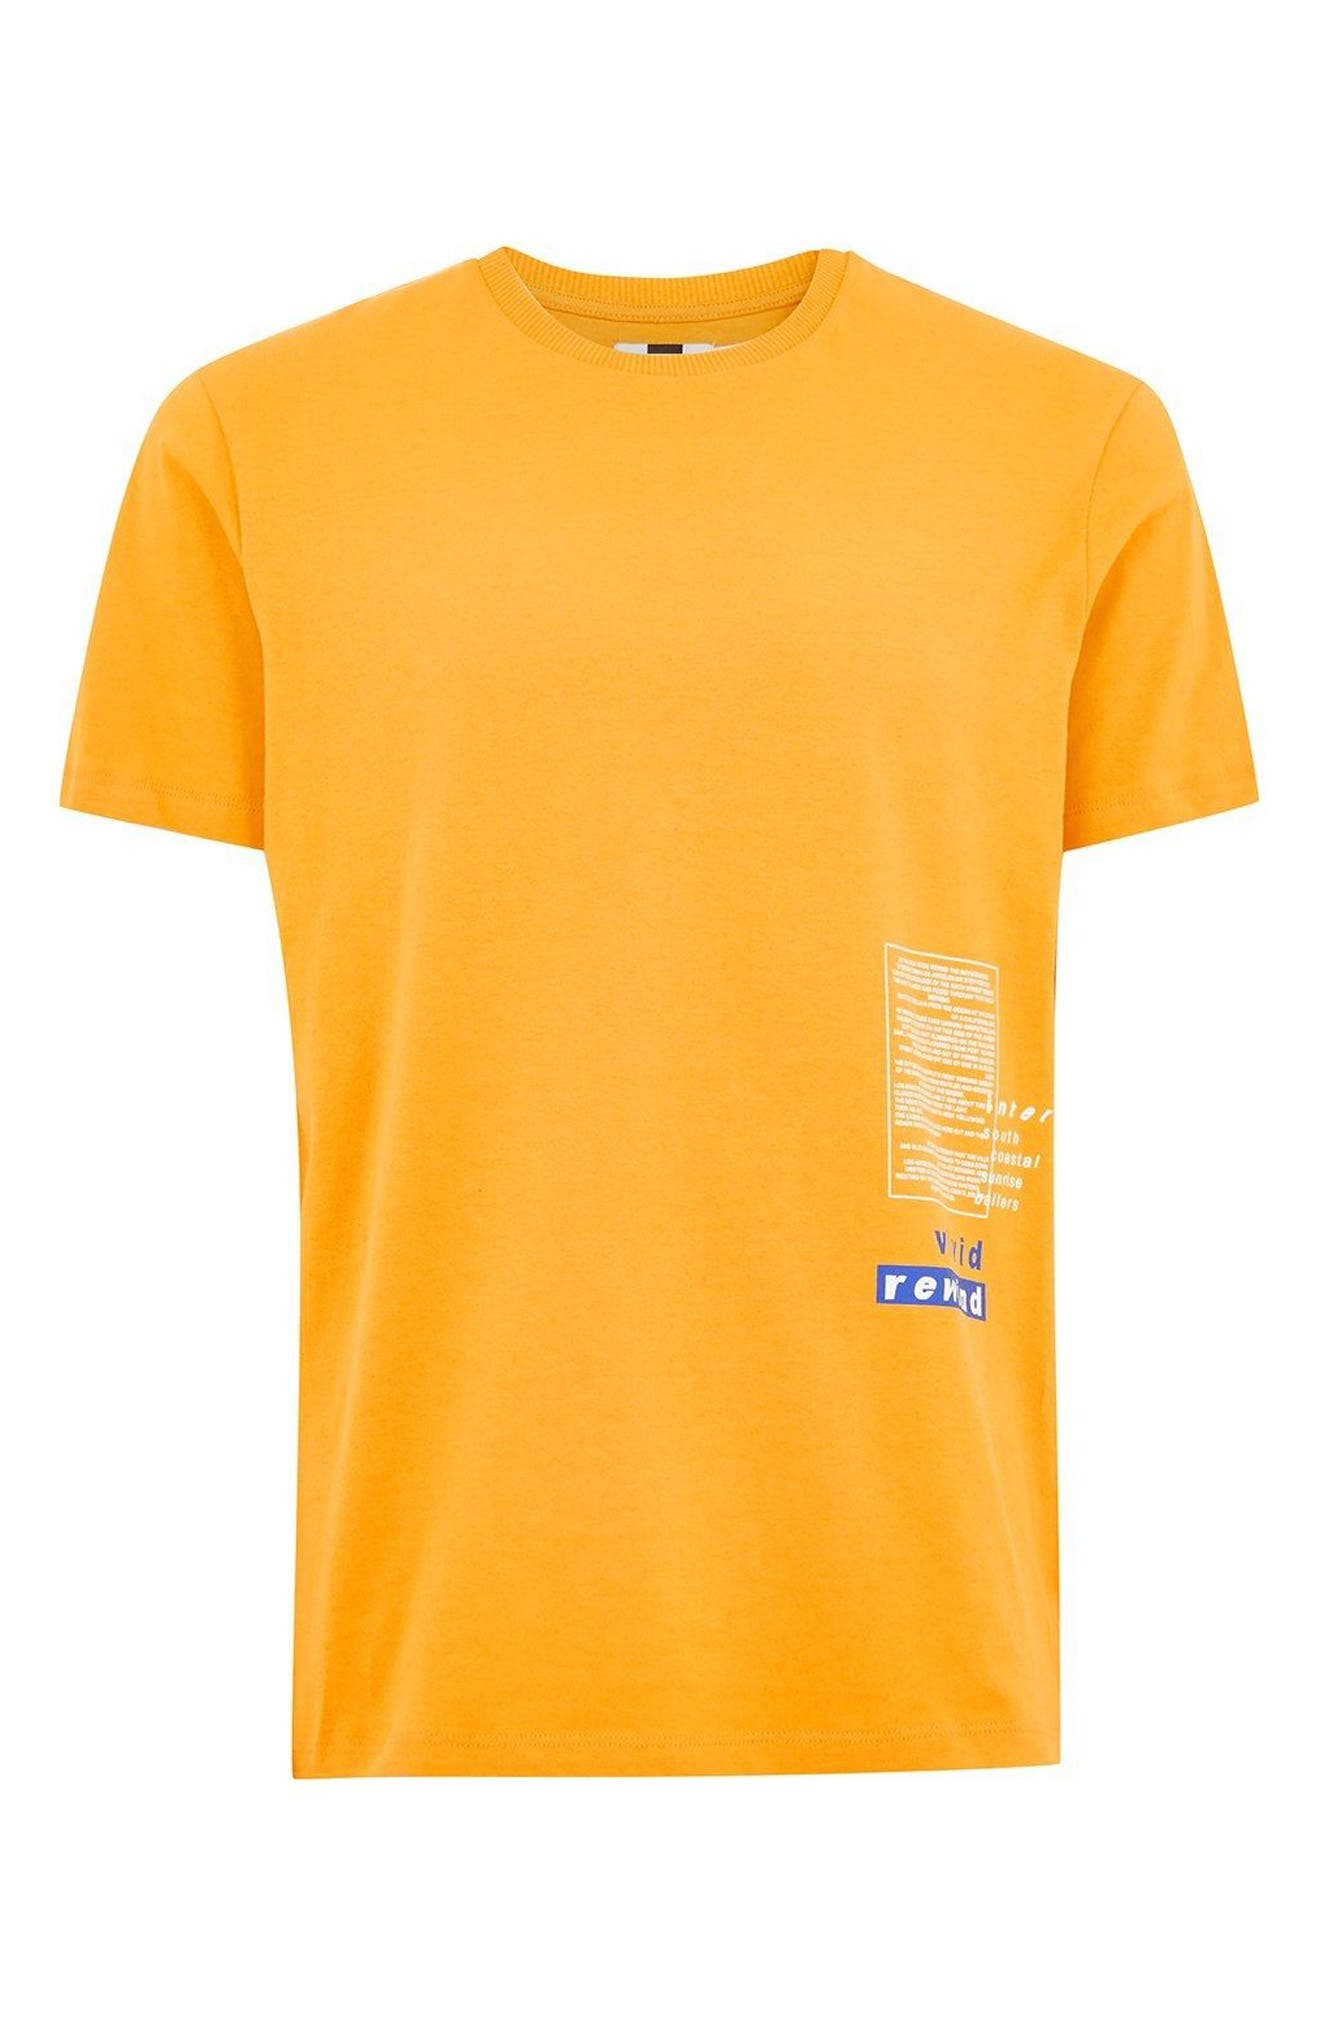 Oversize Refresh Graphic T-Shirt,                             Alternate thumbnail 4, color,                             Orange